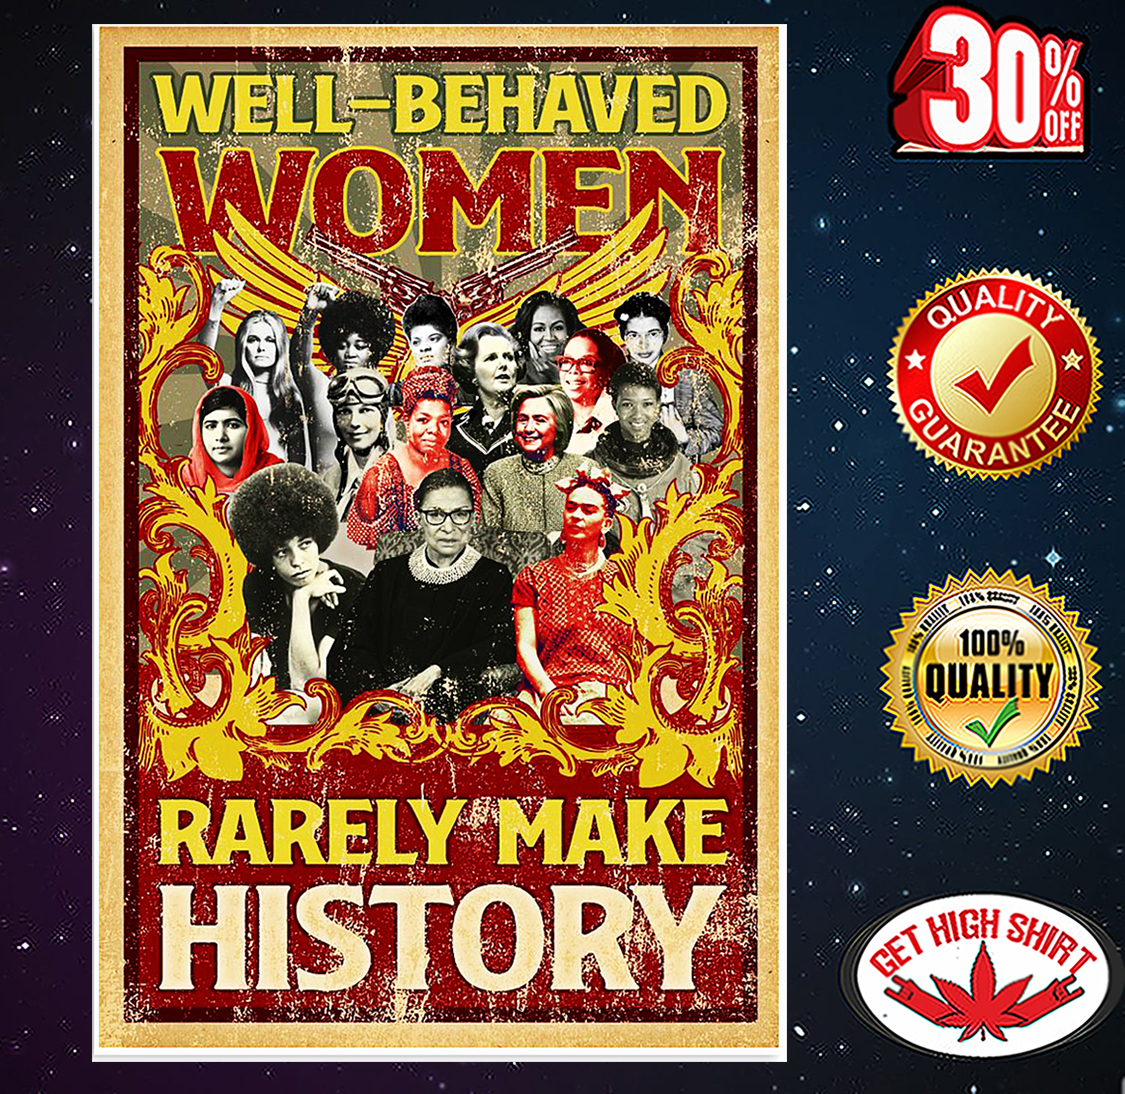 Well behaved women rarely make history poster 16x24